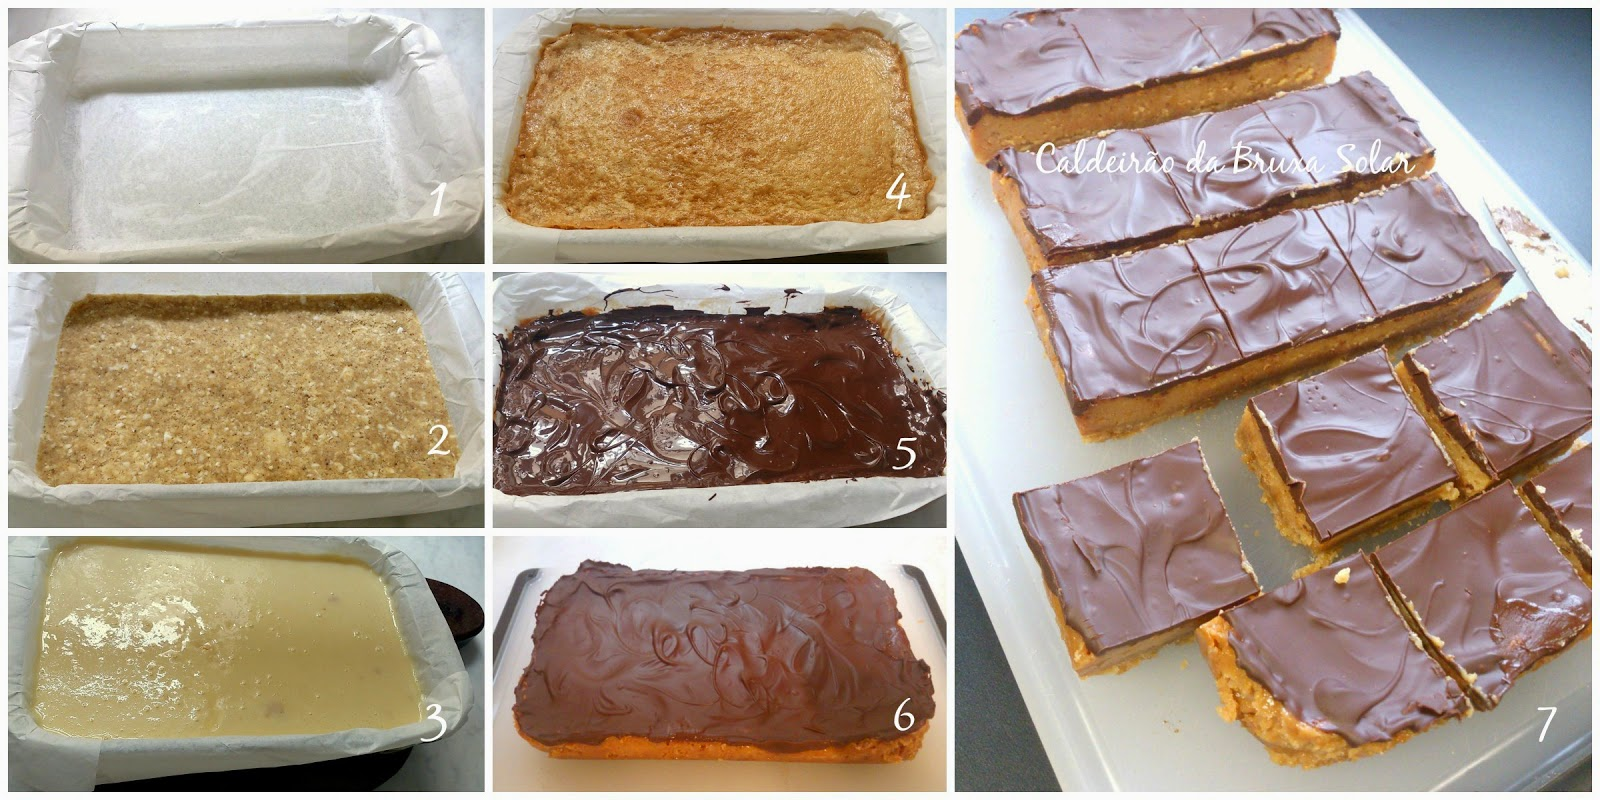 Barrinhas de caramelo, chocolate e coco